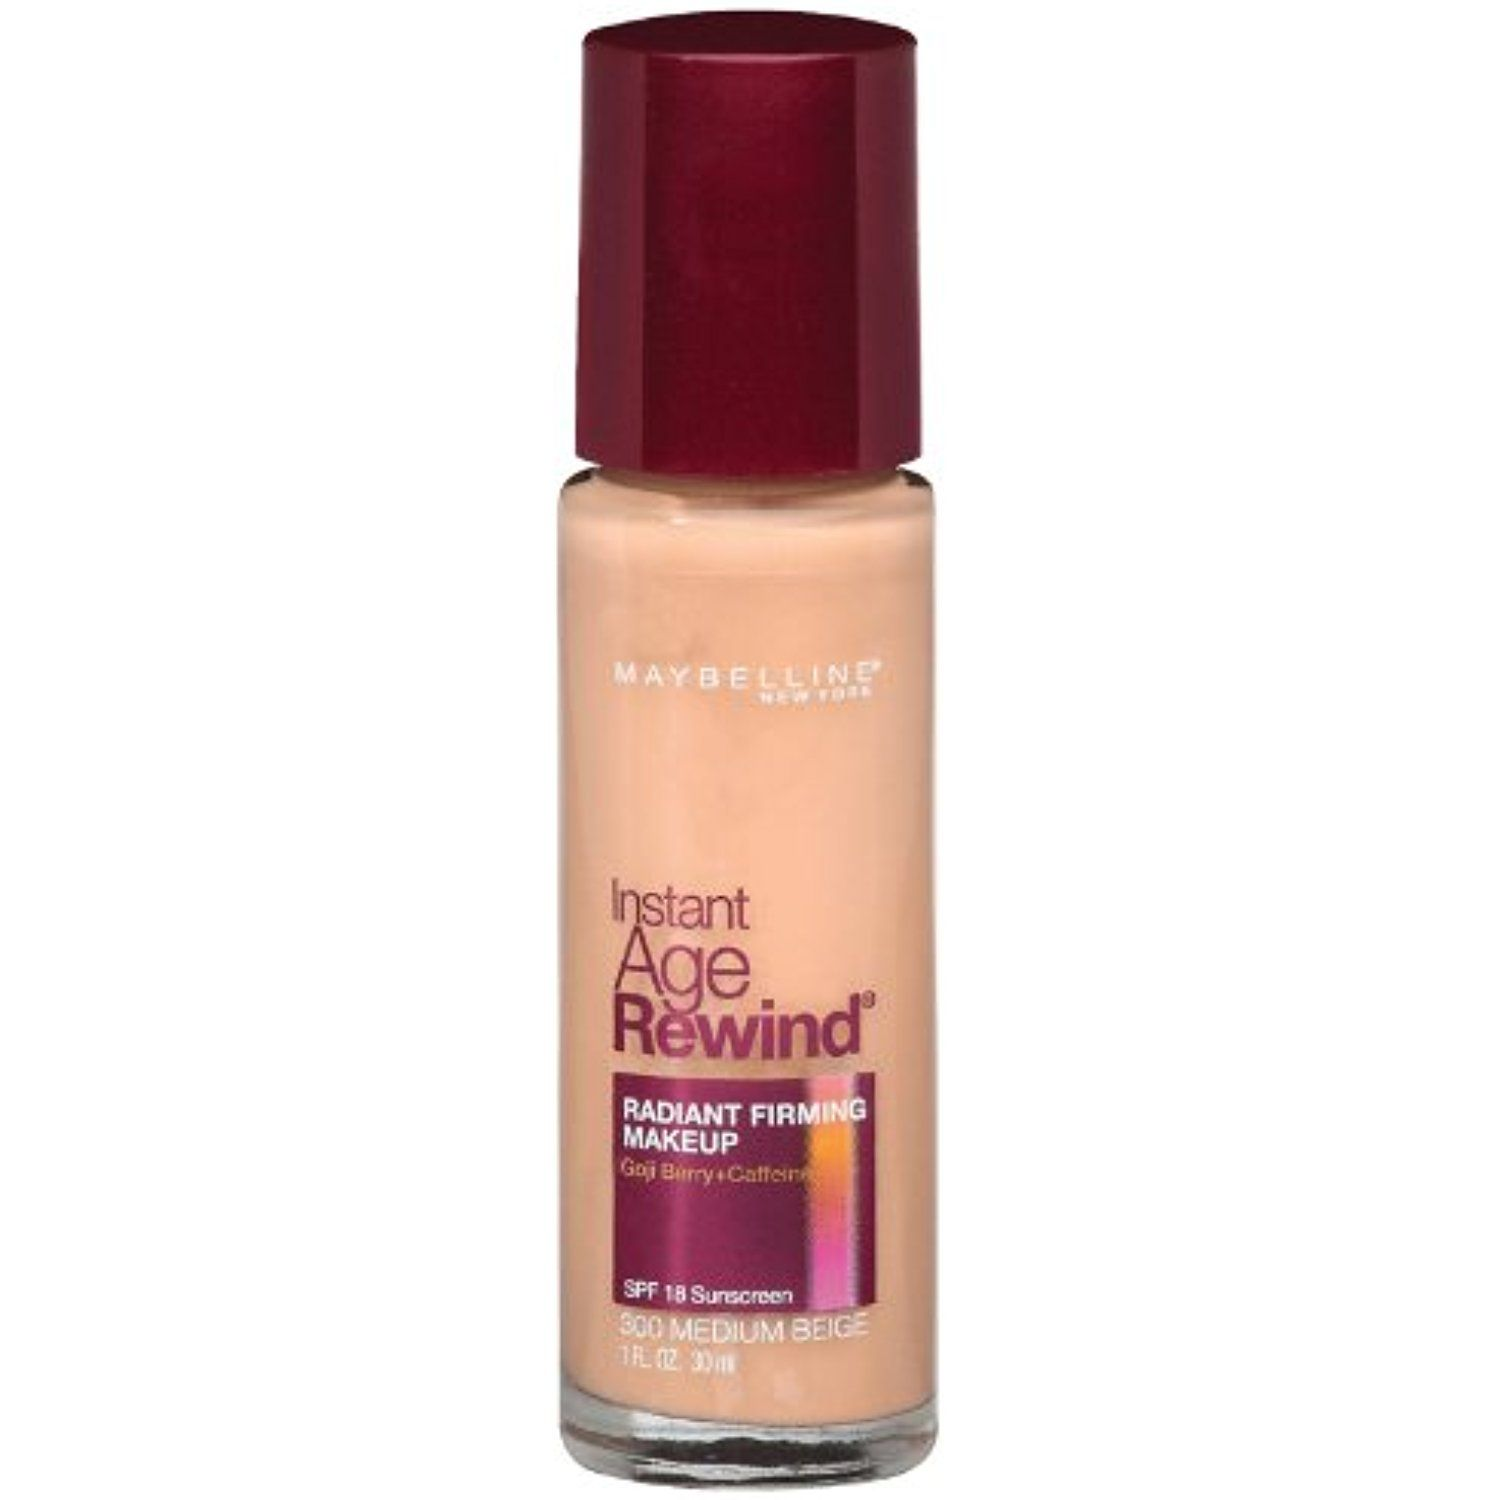 Maybelline New York Instant Age Rewind Radiant Firming Makeup Medium Beige 300 1 Fluid Ounce P Maybelline Instant Age Rewind No Foundation Makeup Age Rewind